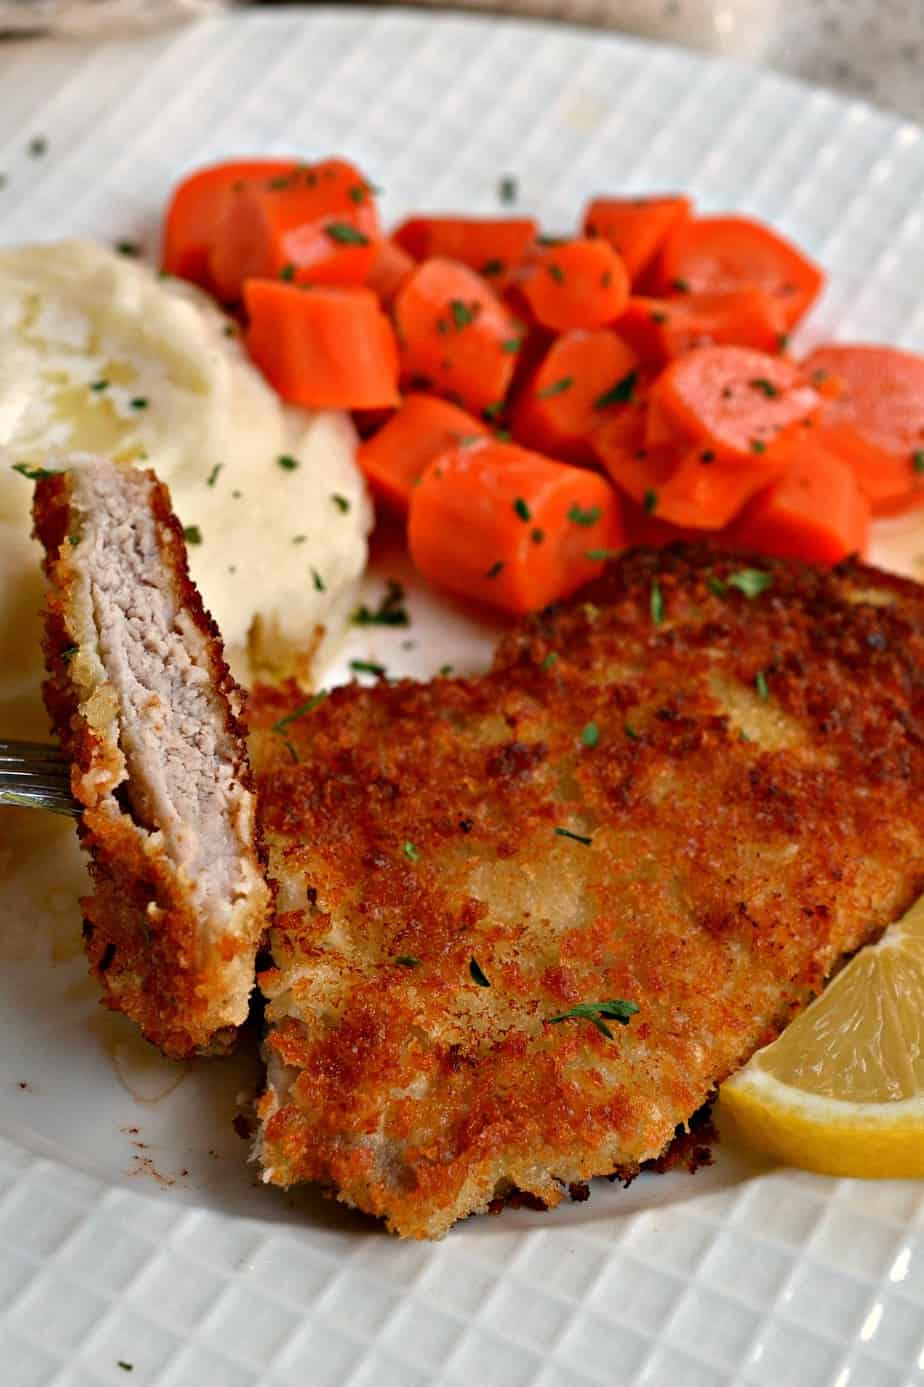 This crispy Pork Schnitzel is one of my all time favorite German dishes.